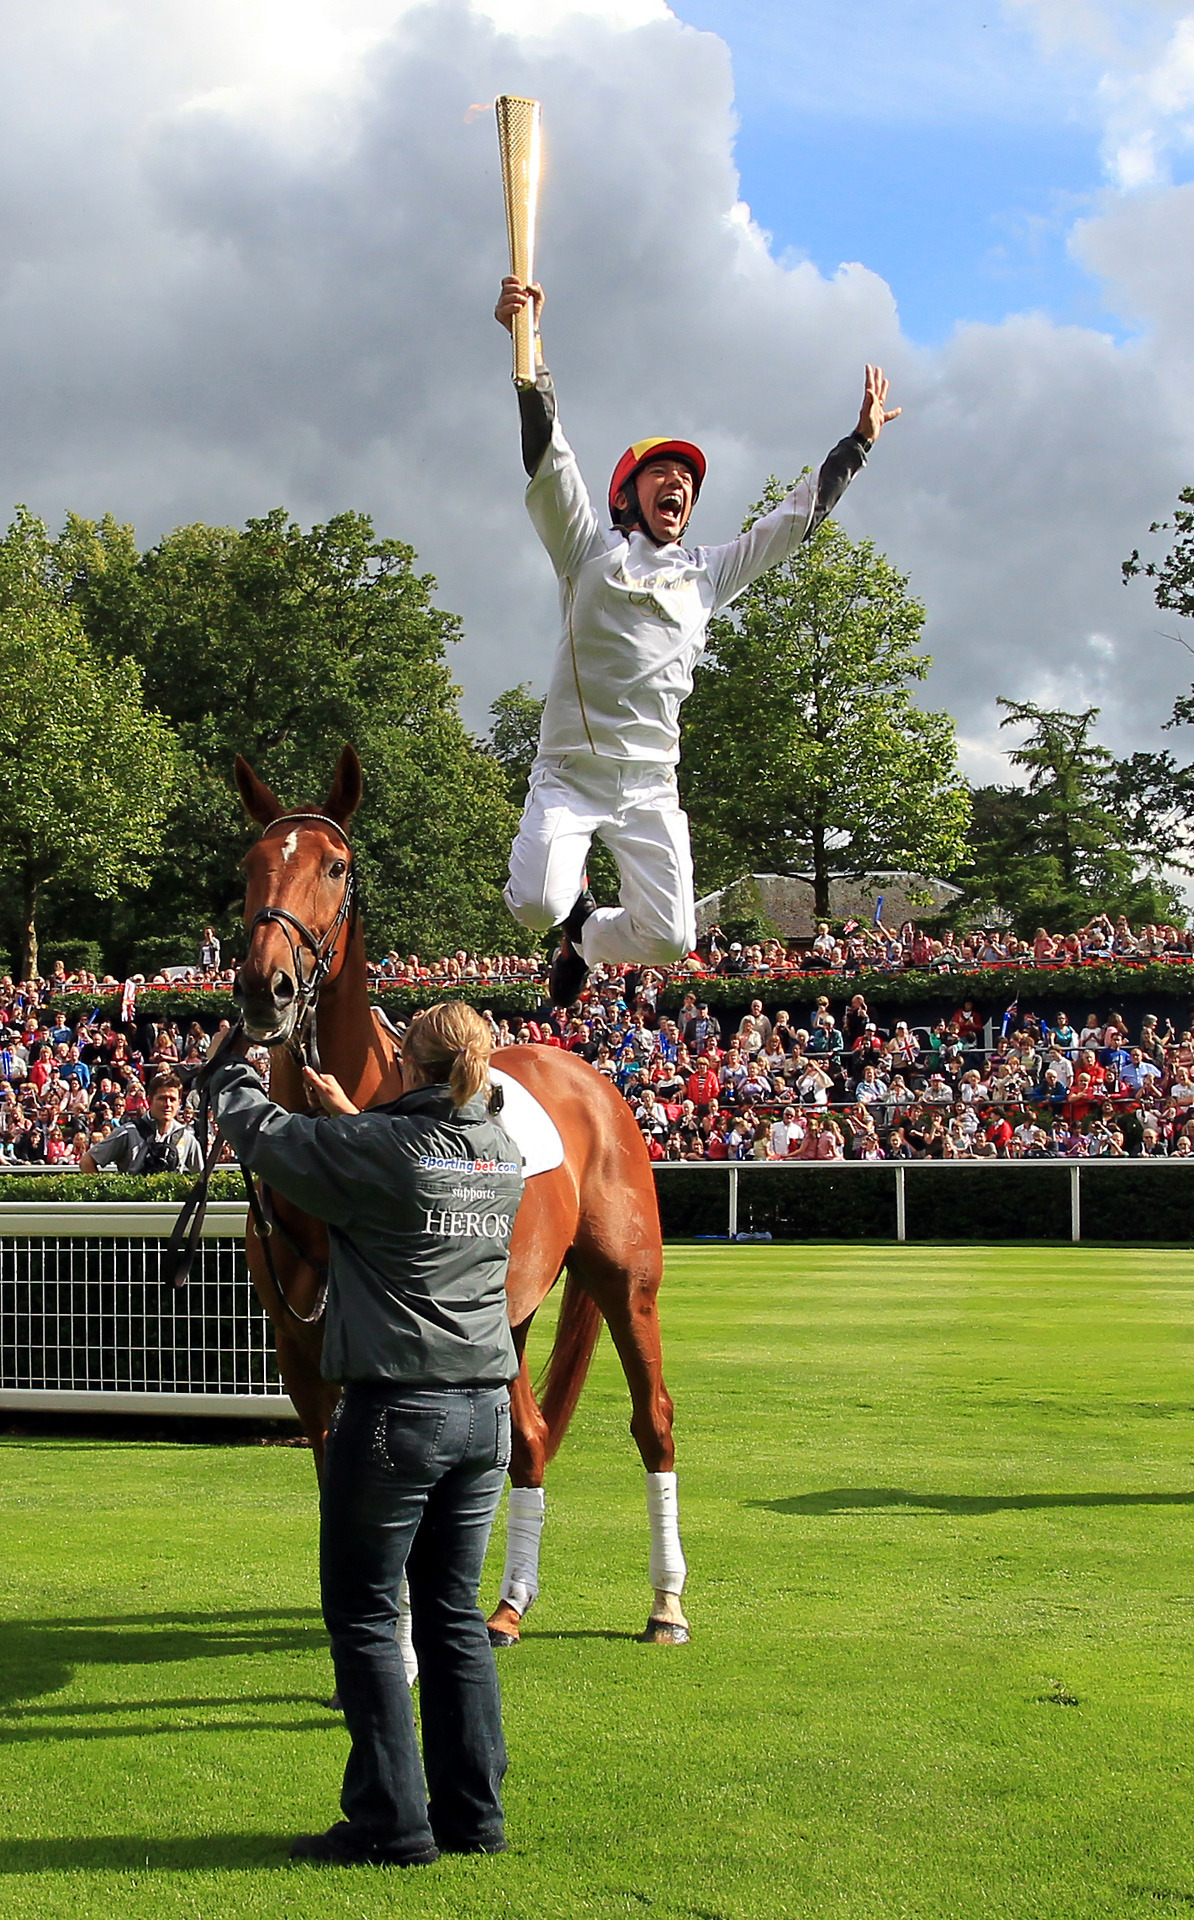 Let the Games begin…soon: Jockey Frankie Dettori leaps from ex-racehorse Monsignor after they carried the Olympic Flame around the parade ring at Ascot Racecourse during day 53 of the London 2012 Olympic Torch Relay on July 10, 2012 in Windsor, England. The Olympic Flame is now on day 53 of a 70-day relay involving 8,000 torchbearers covering 8,000 miles.Photo: LOCOG via Getty Images